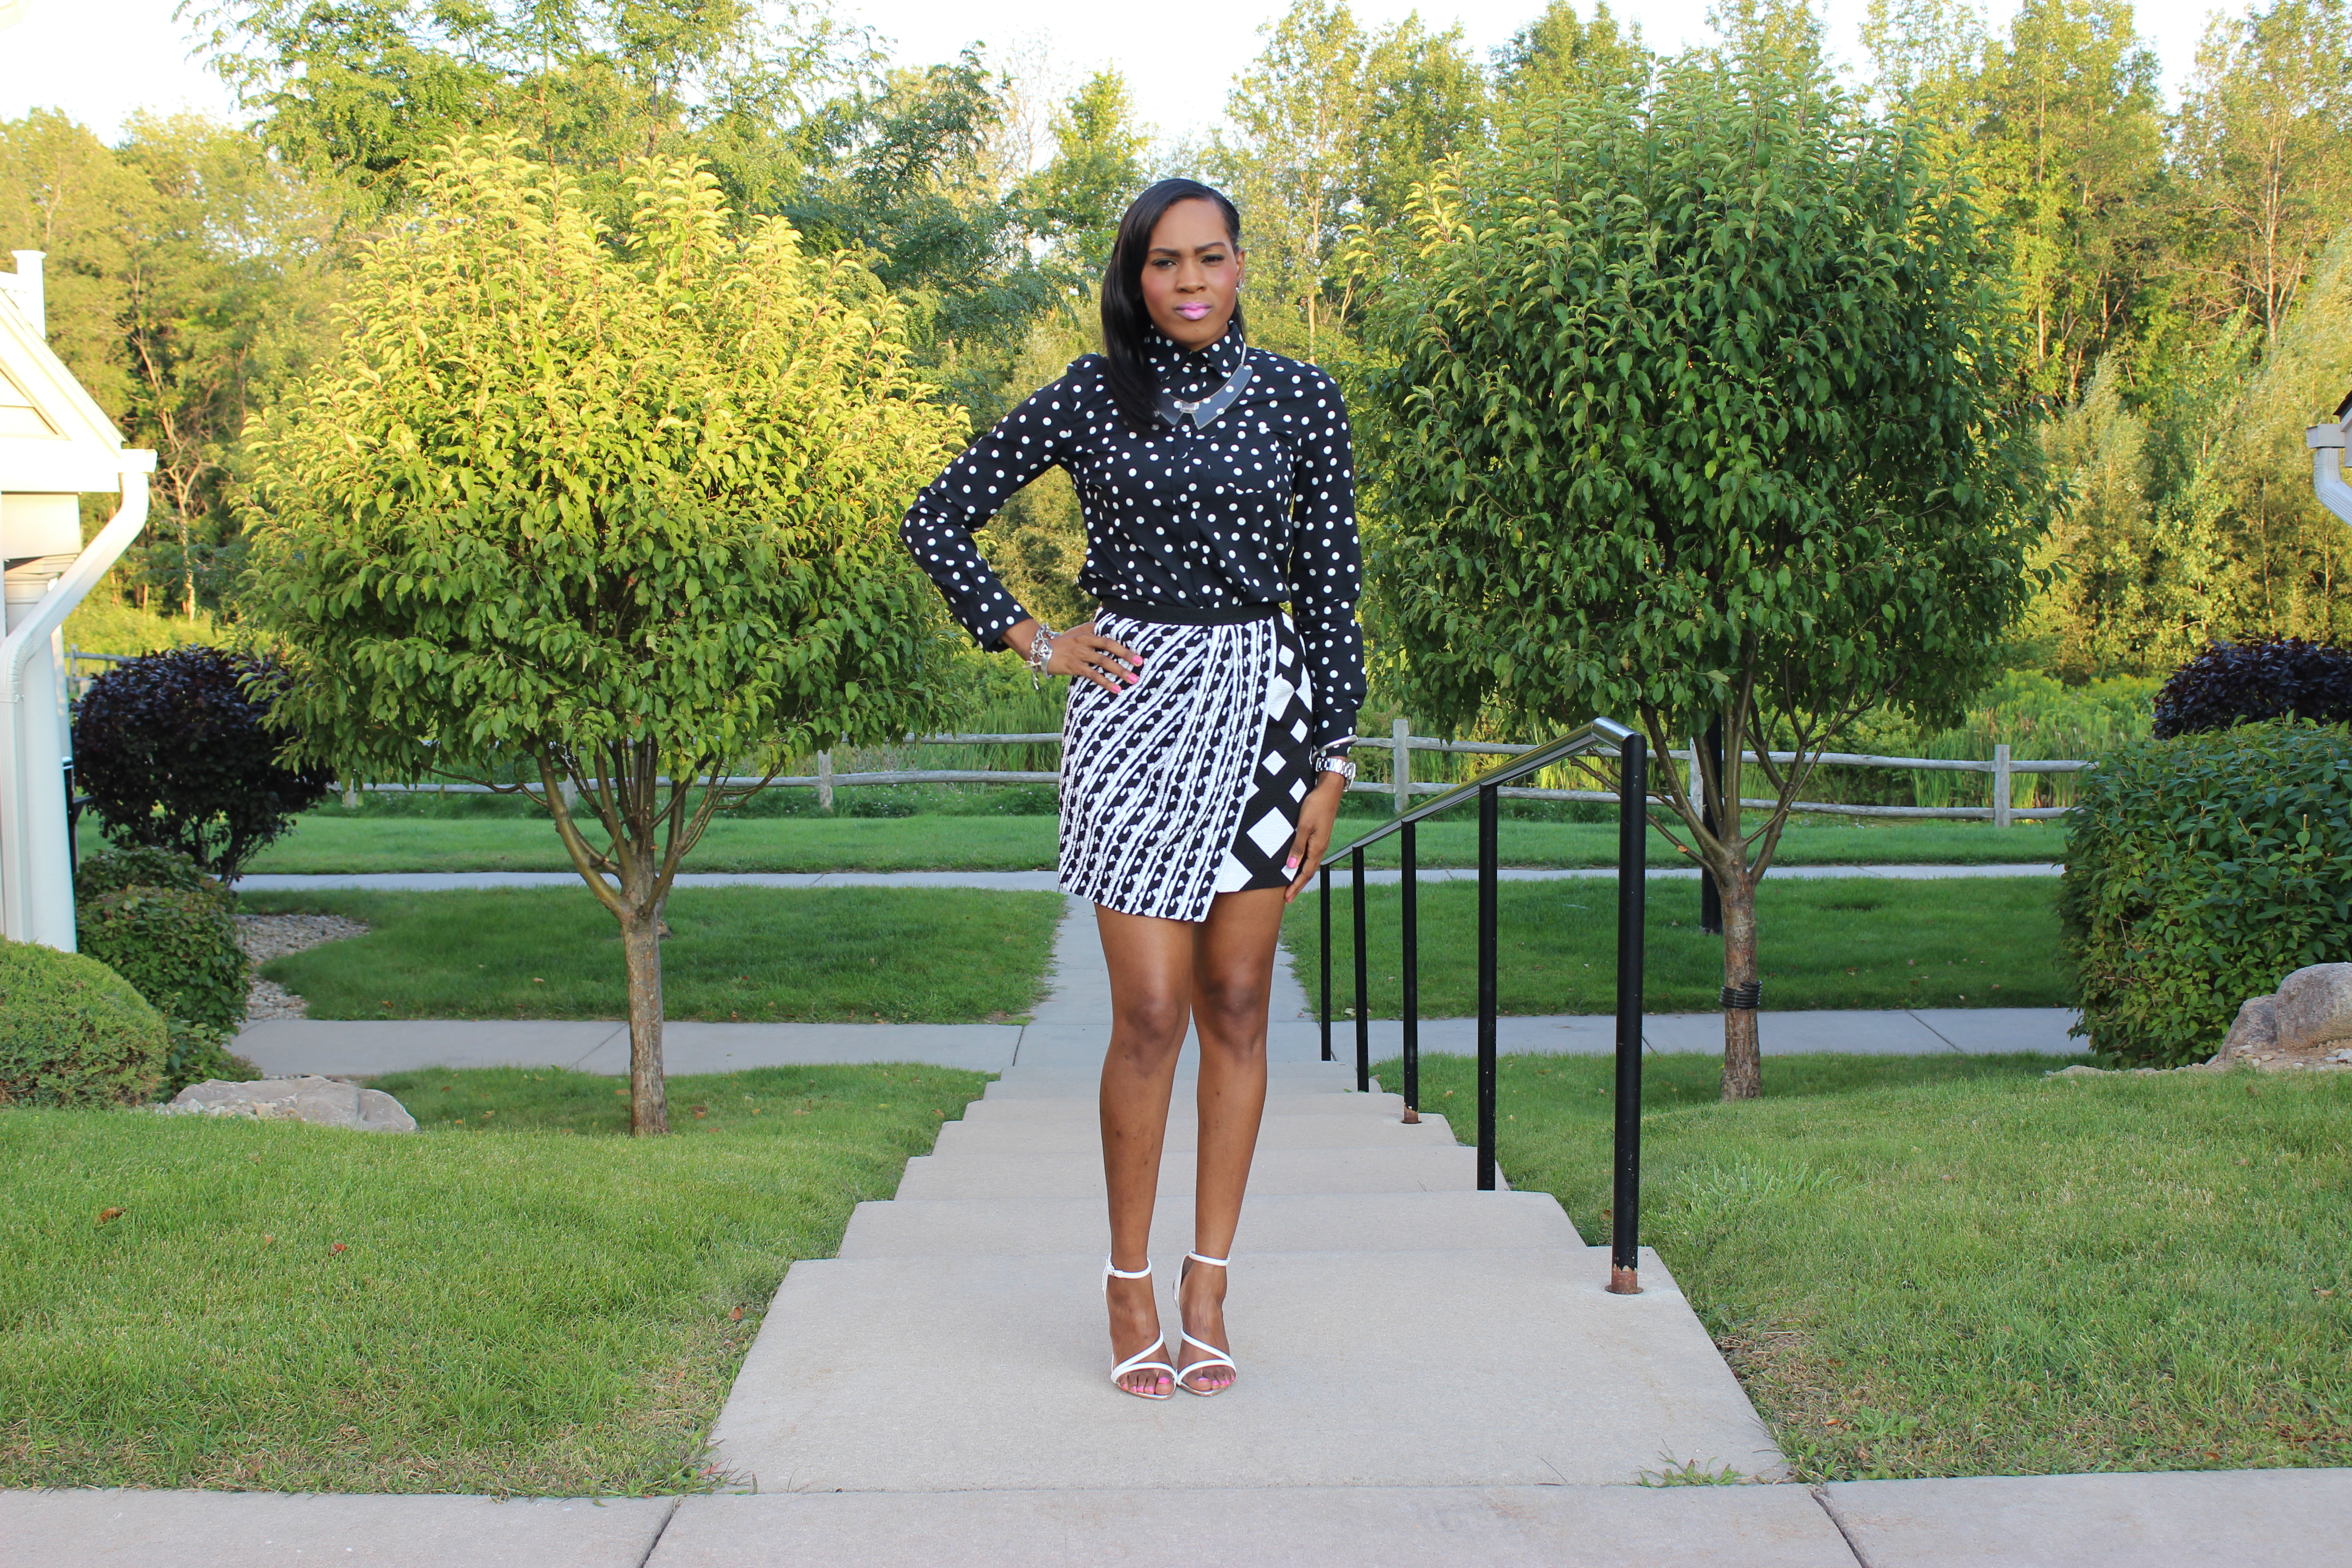 Style-Files-With-Pretty-Price-Merona-black-and-white-Polka-dot-blouse-Peter-Pilotto for target -black-and-white-skirt-Zara-white- HIGH HEEL STRAPPY SANDALS-6